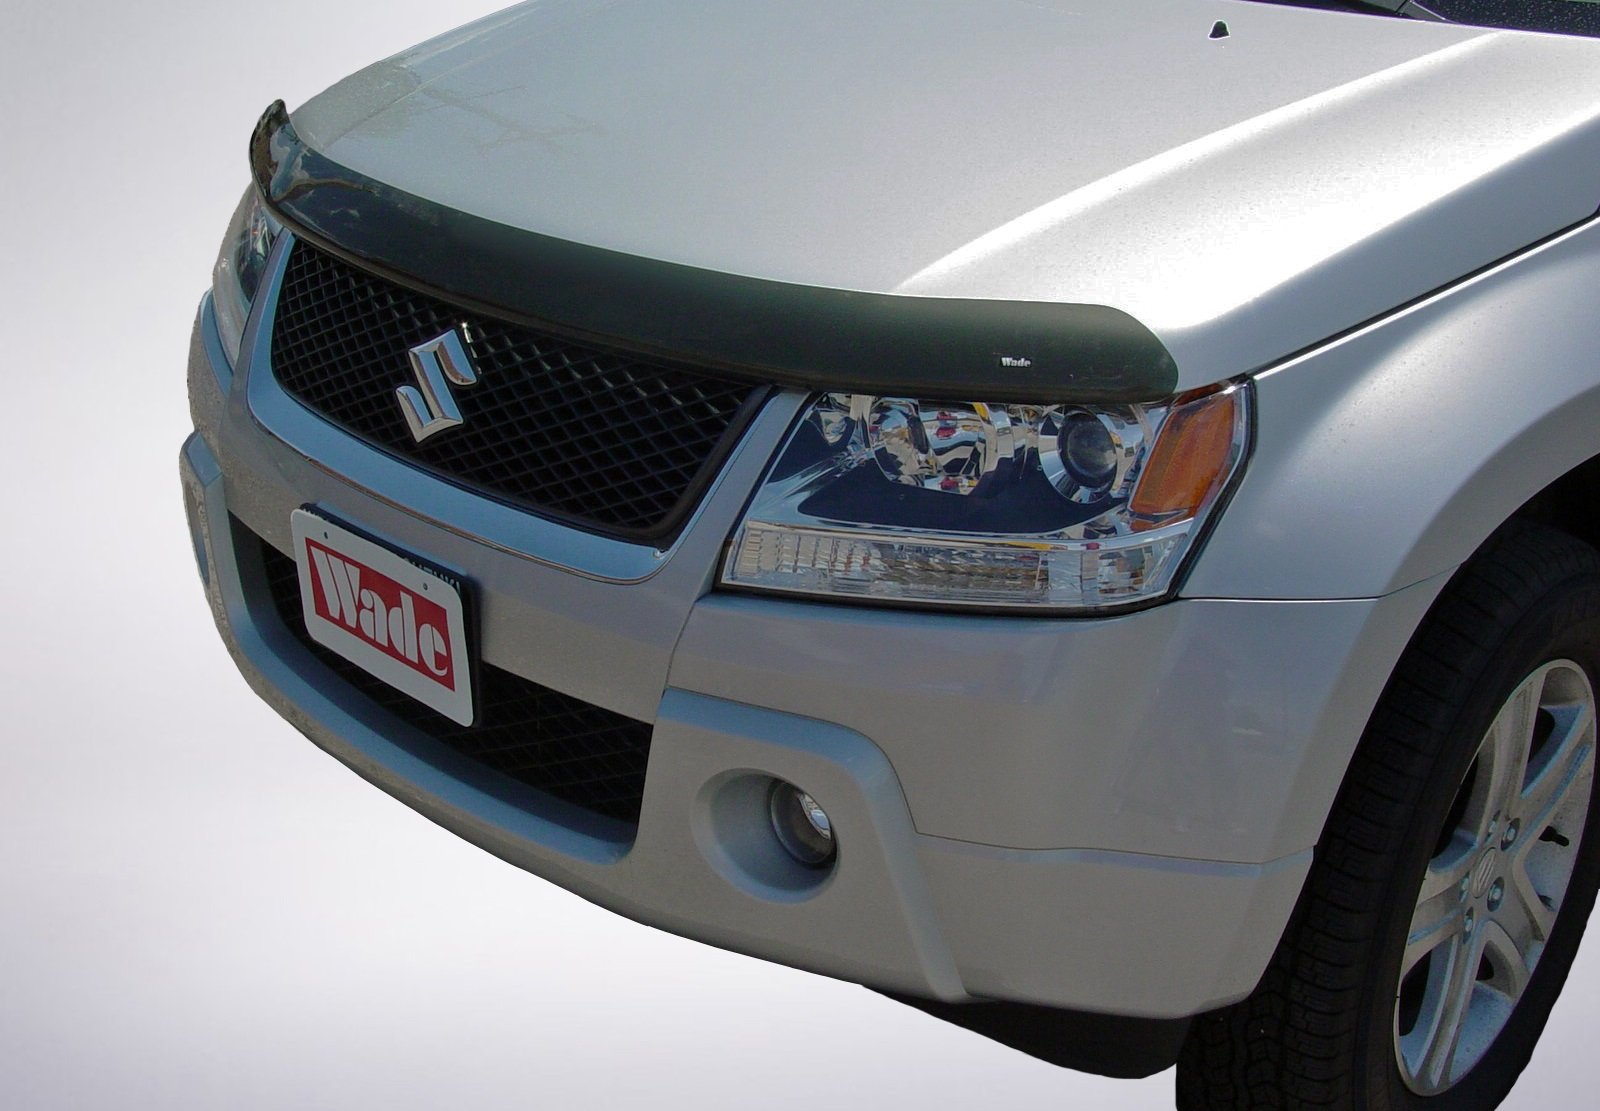 2010 Suzuki Grand Vitara Bug Shield